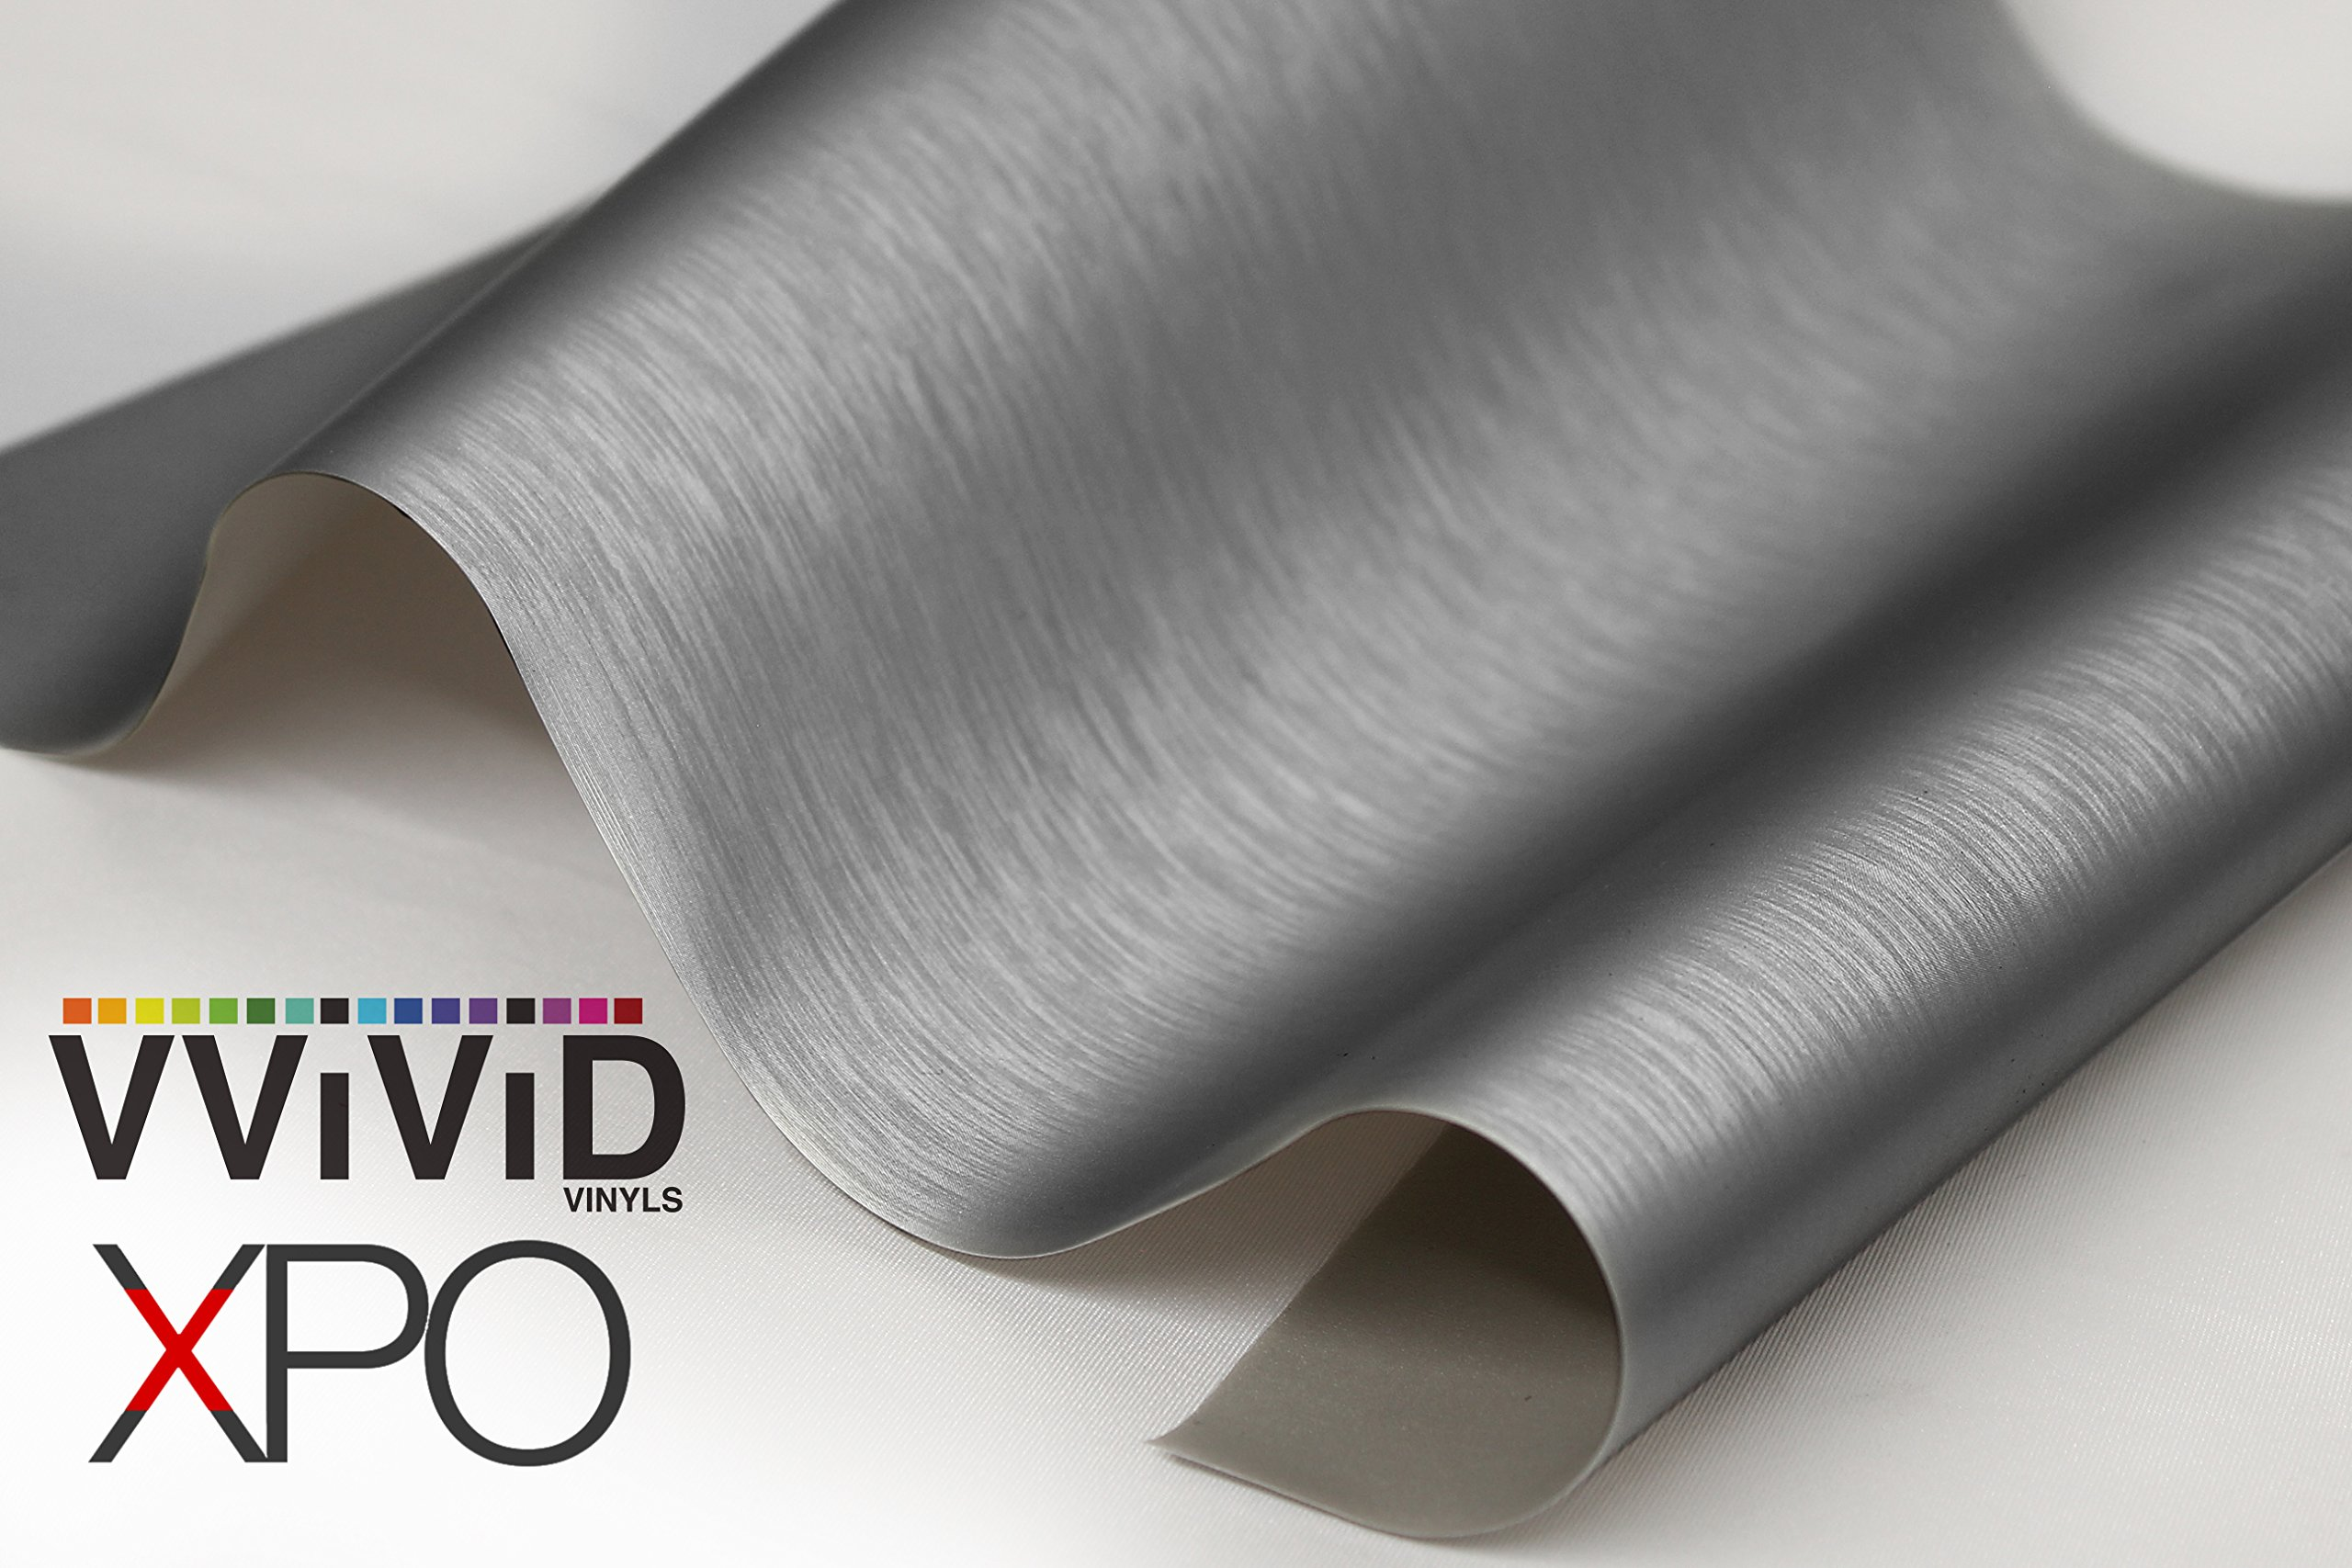 VViViD XPO Gunmetal Grey Brushed Metallic Steel Vinyl Wrap Roll with Air Release Technology (25ft x 5ft)